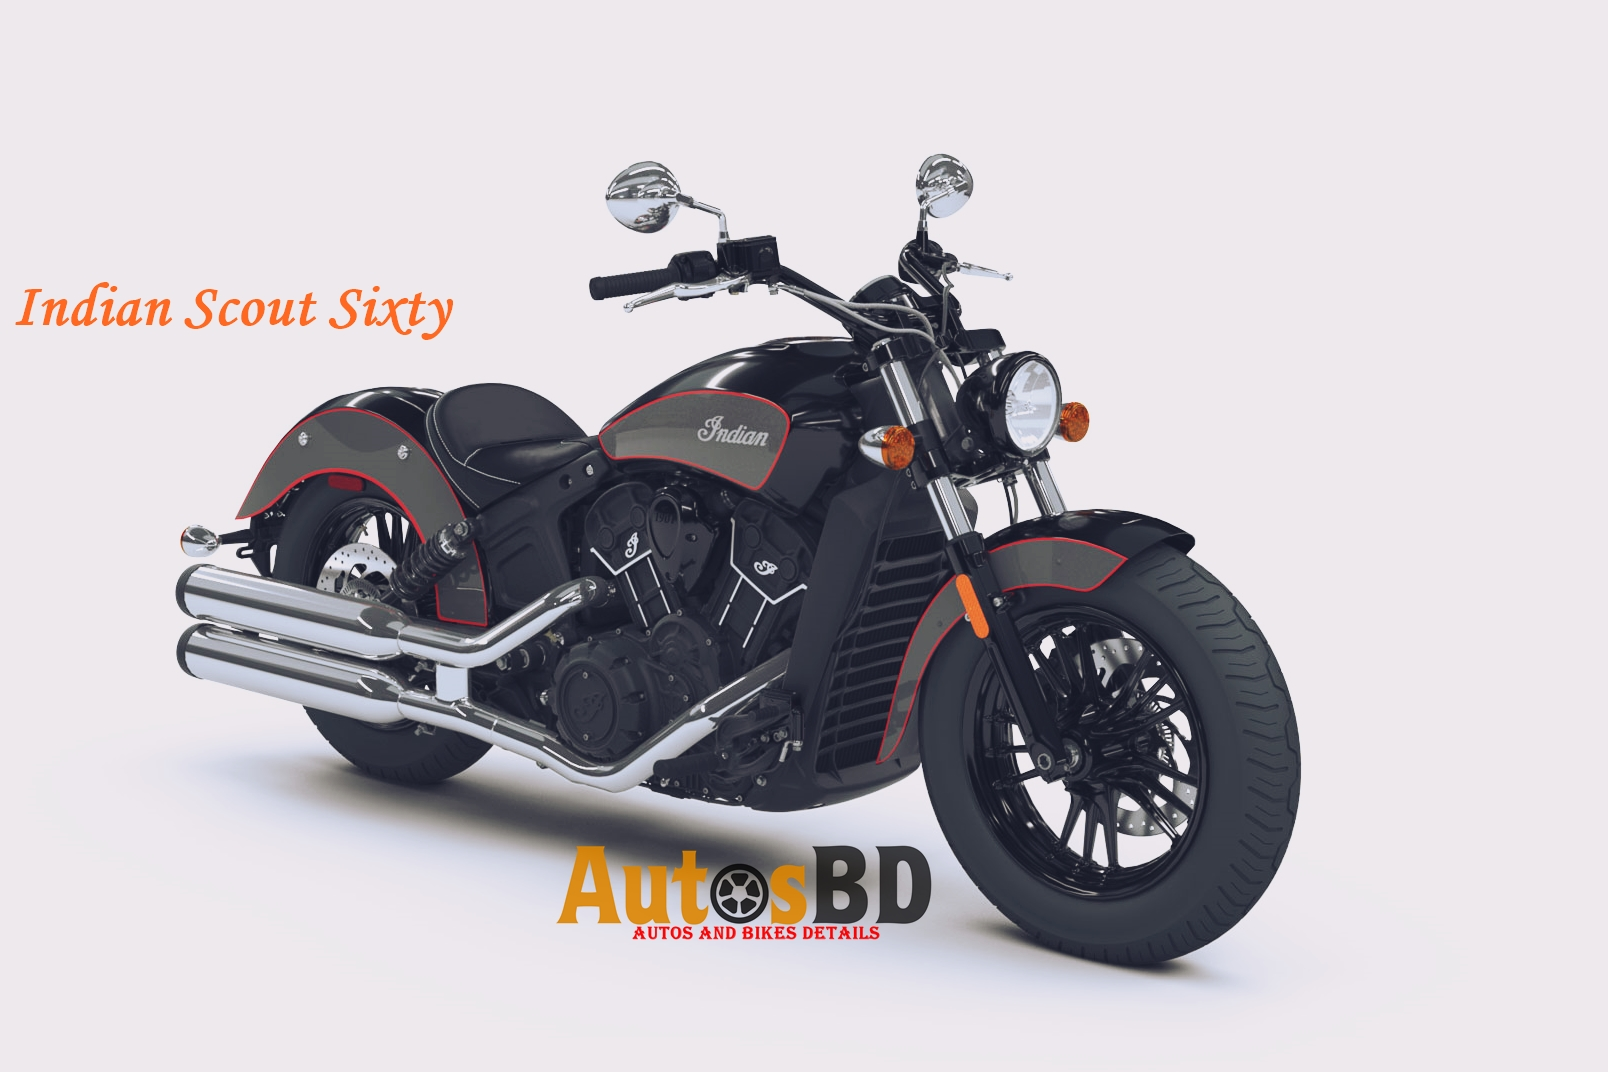 Indian Scout Sixty Price in India